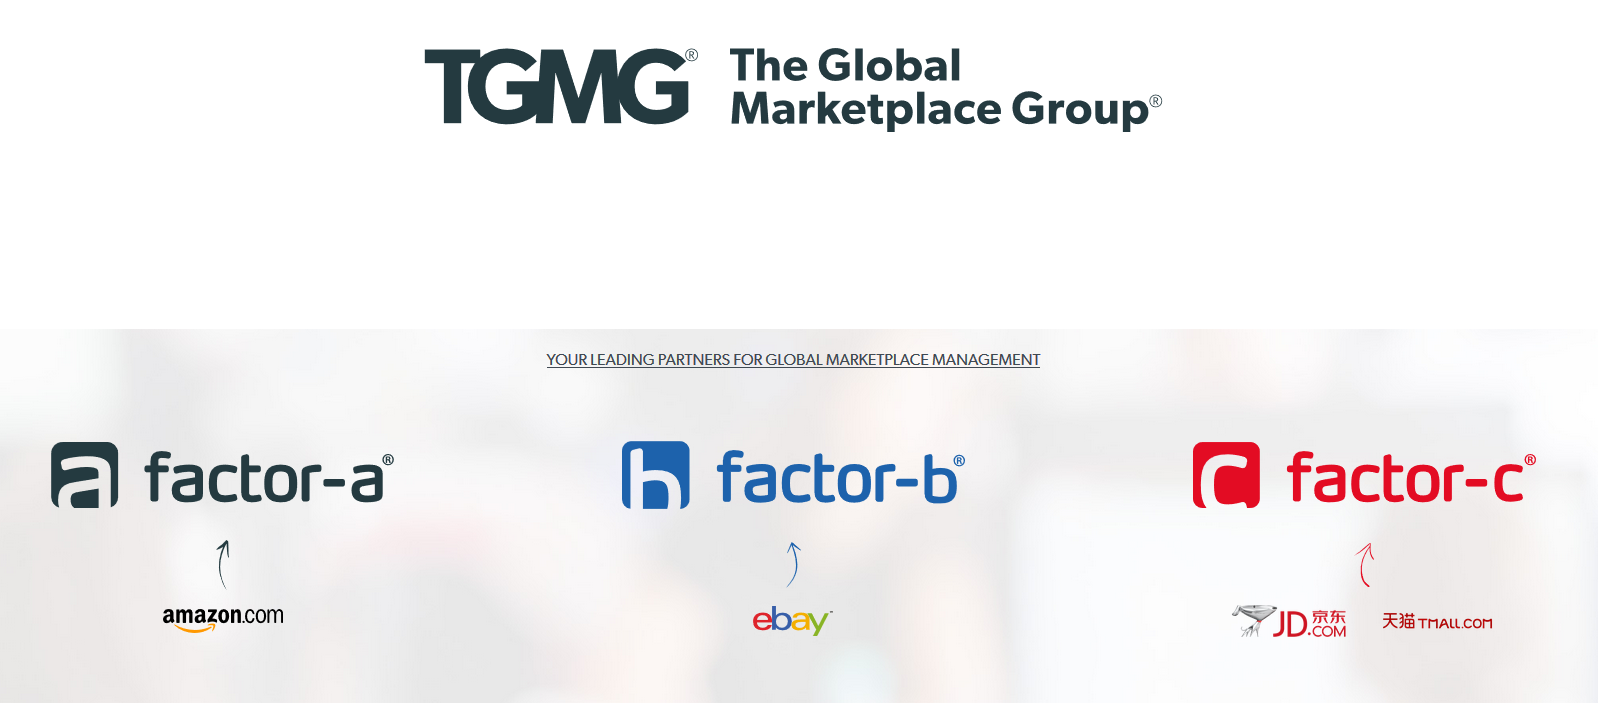 factor-a devient The Global Marketplace Group